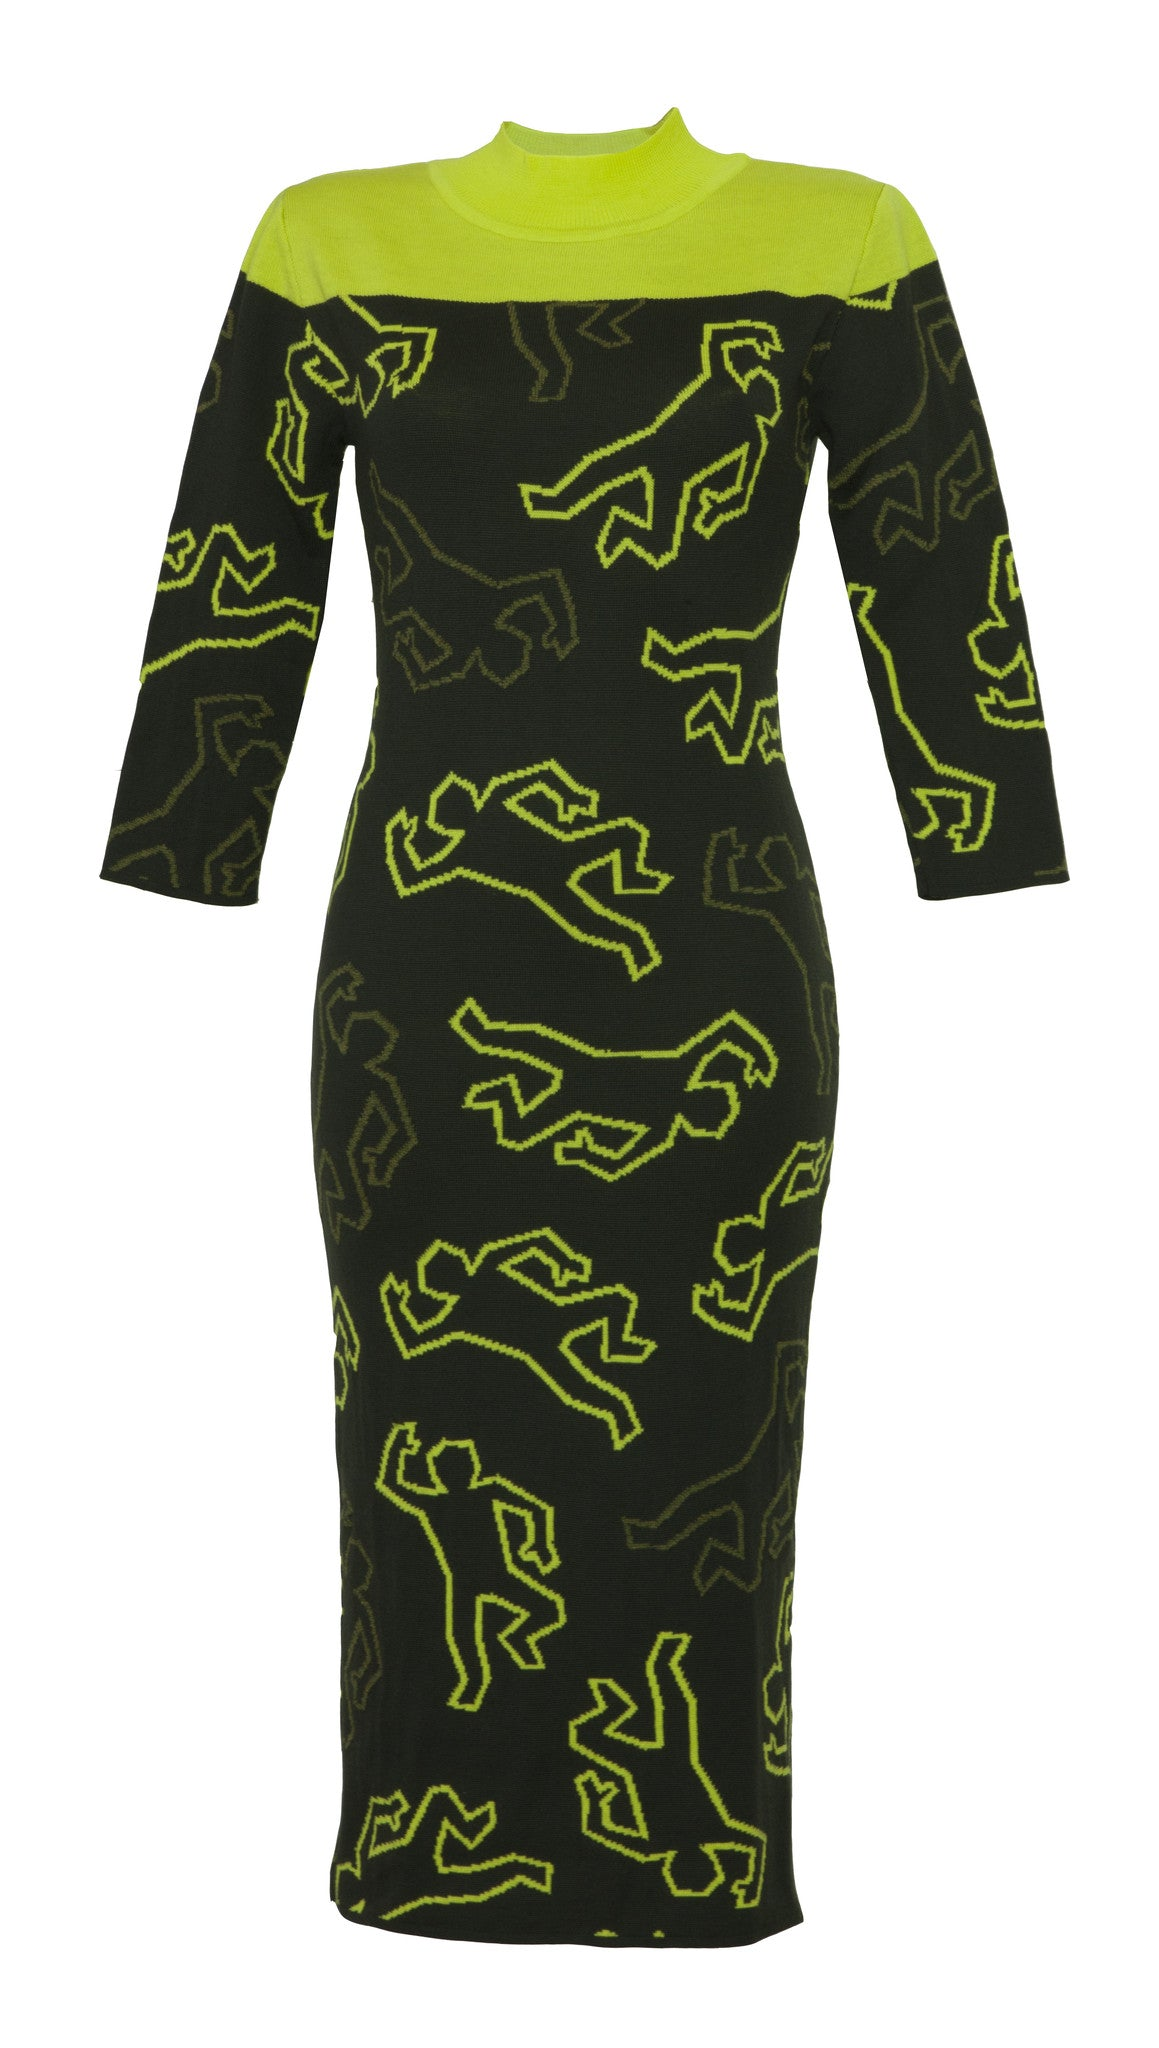 EYGLO - Investigator Dress